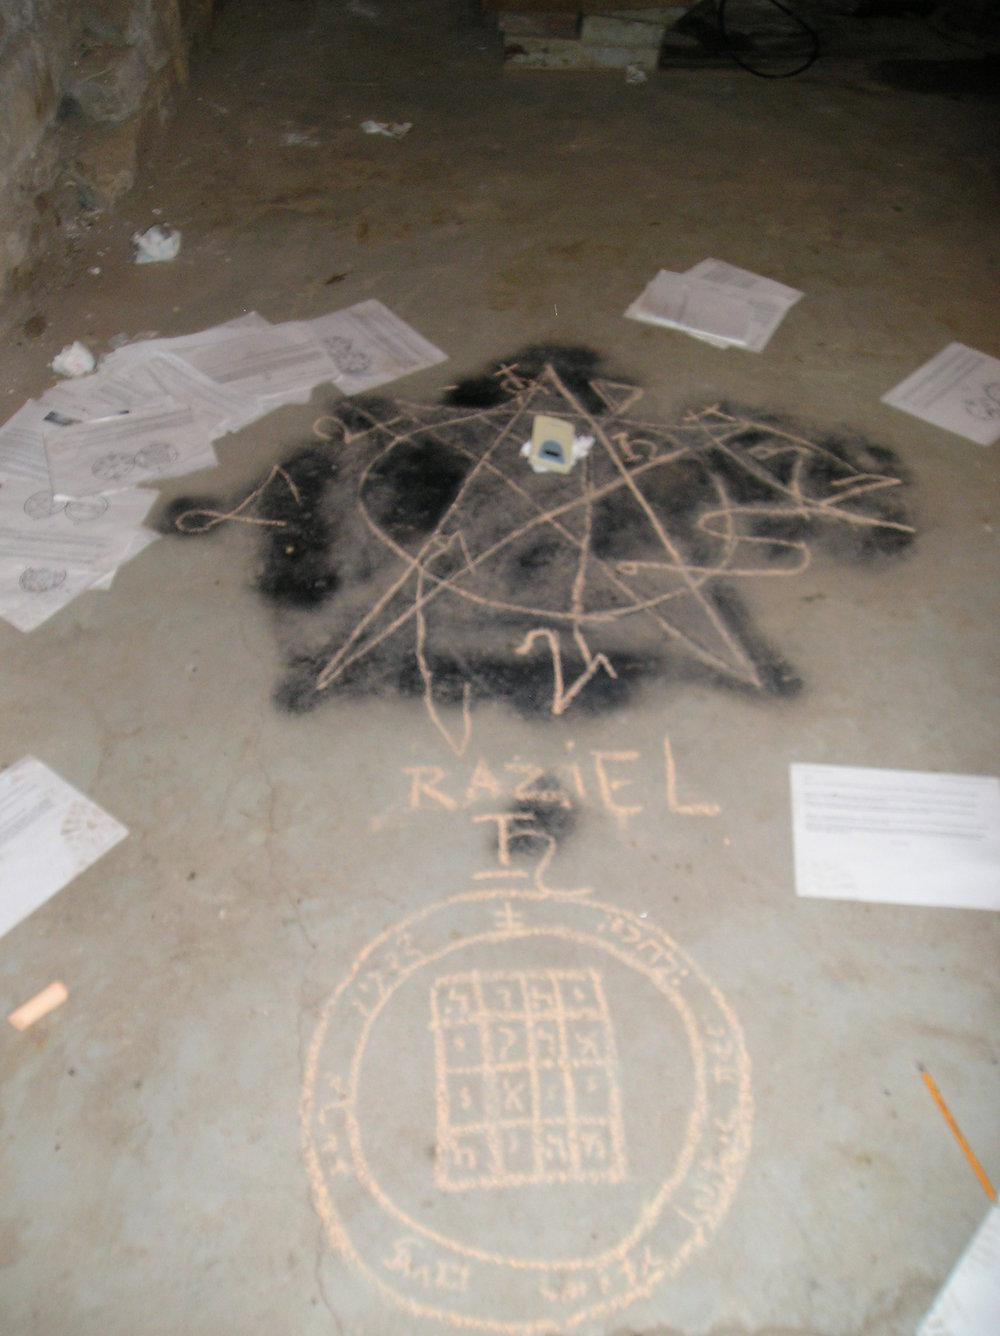 A demonologist's attempt at retracing the pentagram drawn on the floor of the basement by a previous tenant, in order to determine what spells had been cast, and then adding some protective sigils.